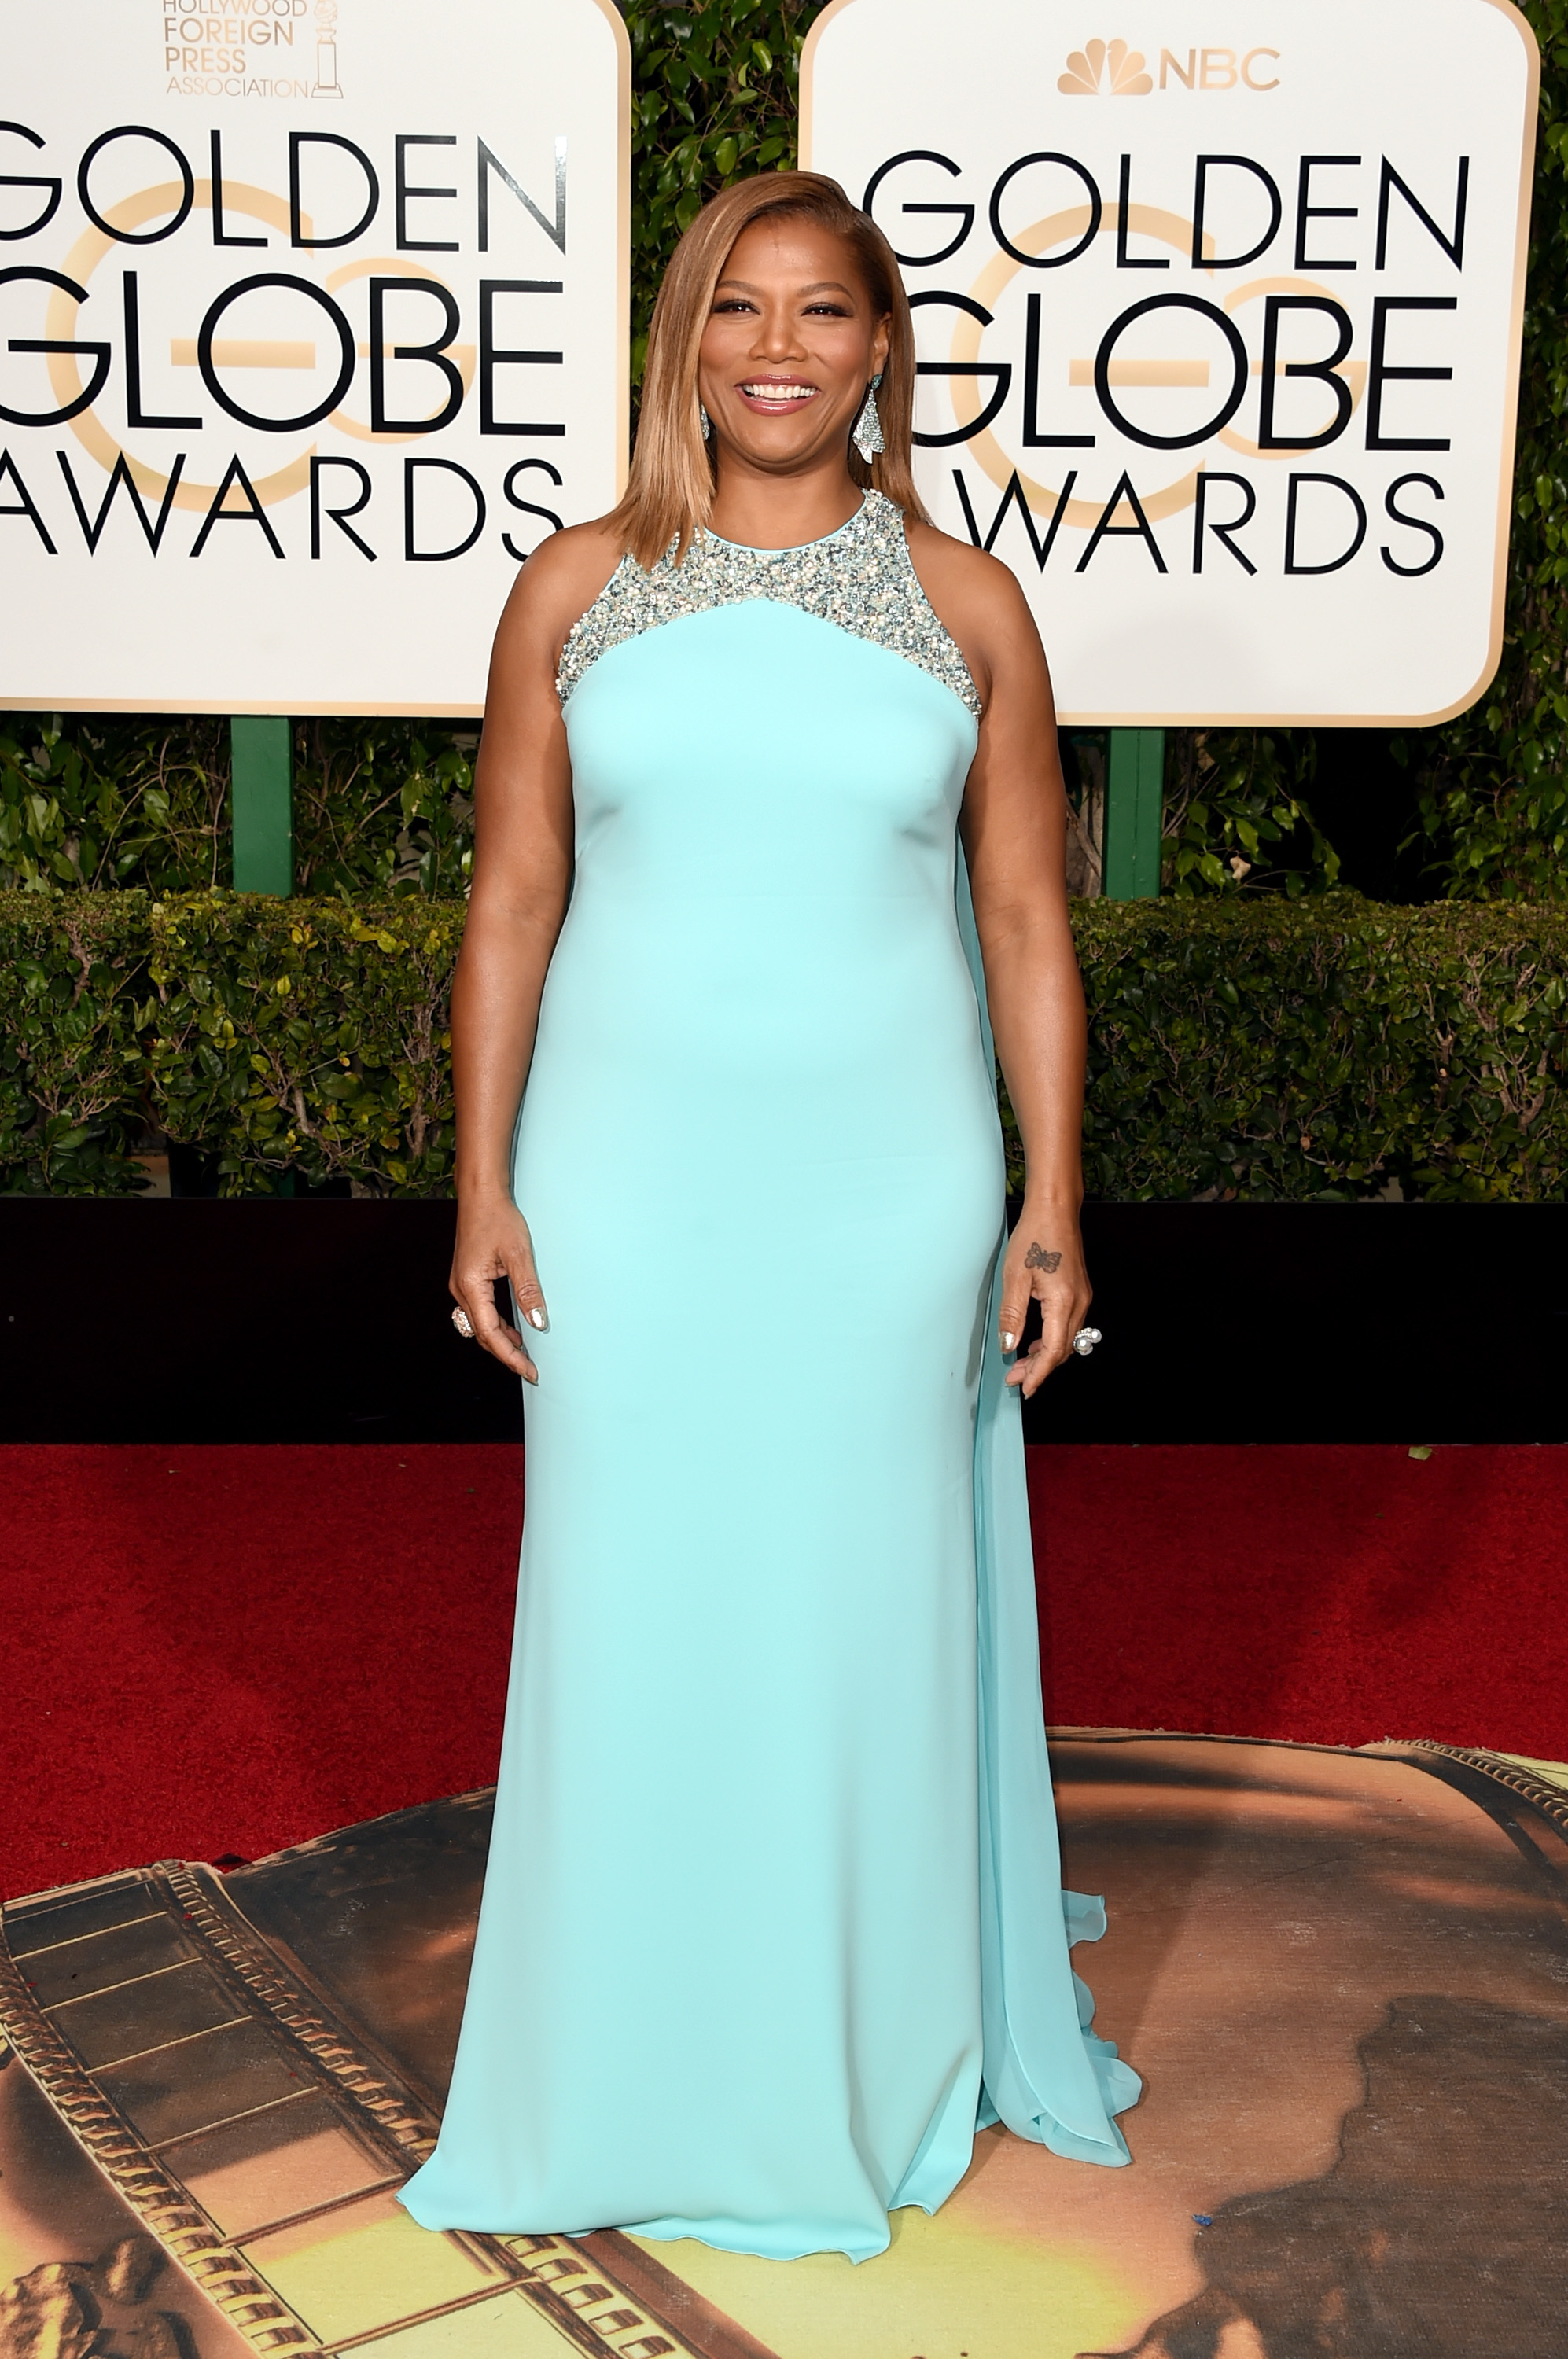 Queen Latifah arrives to the 73rd Annual Golden Globe Awards on Jan. 10, 2016 in Beverly Hills.